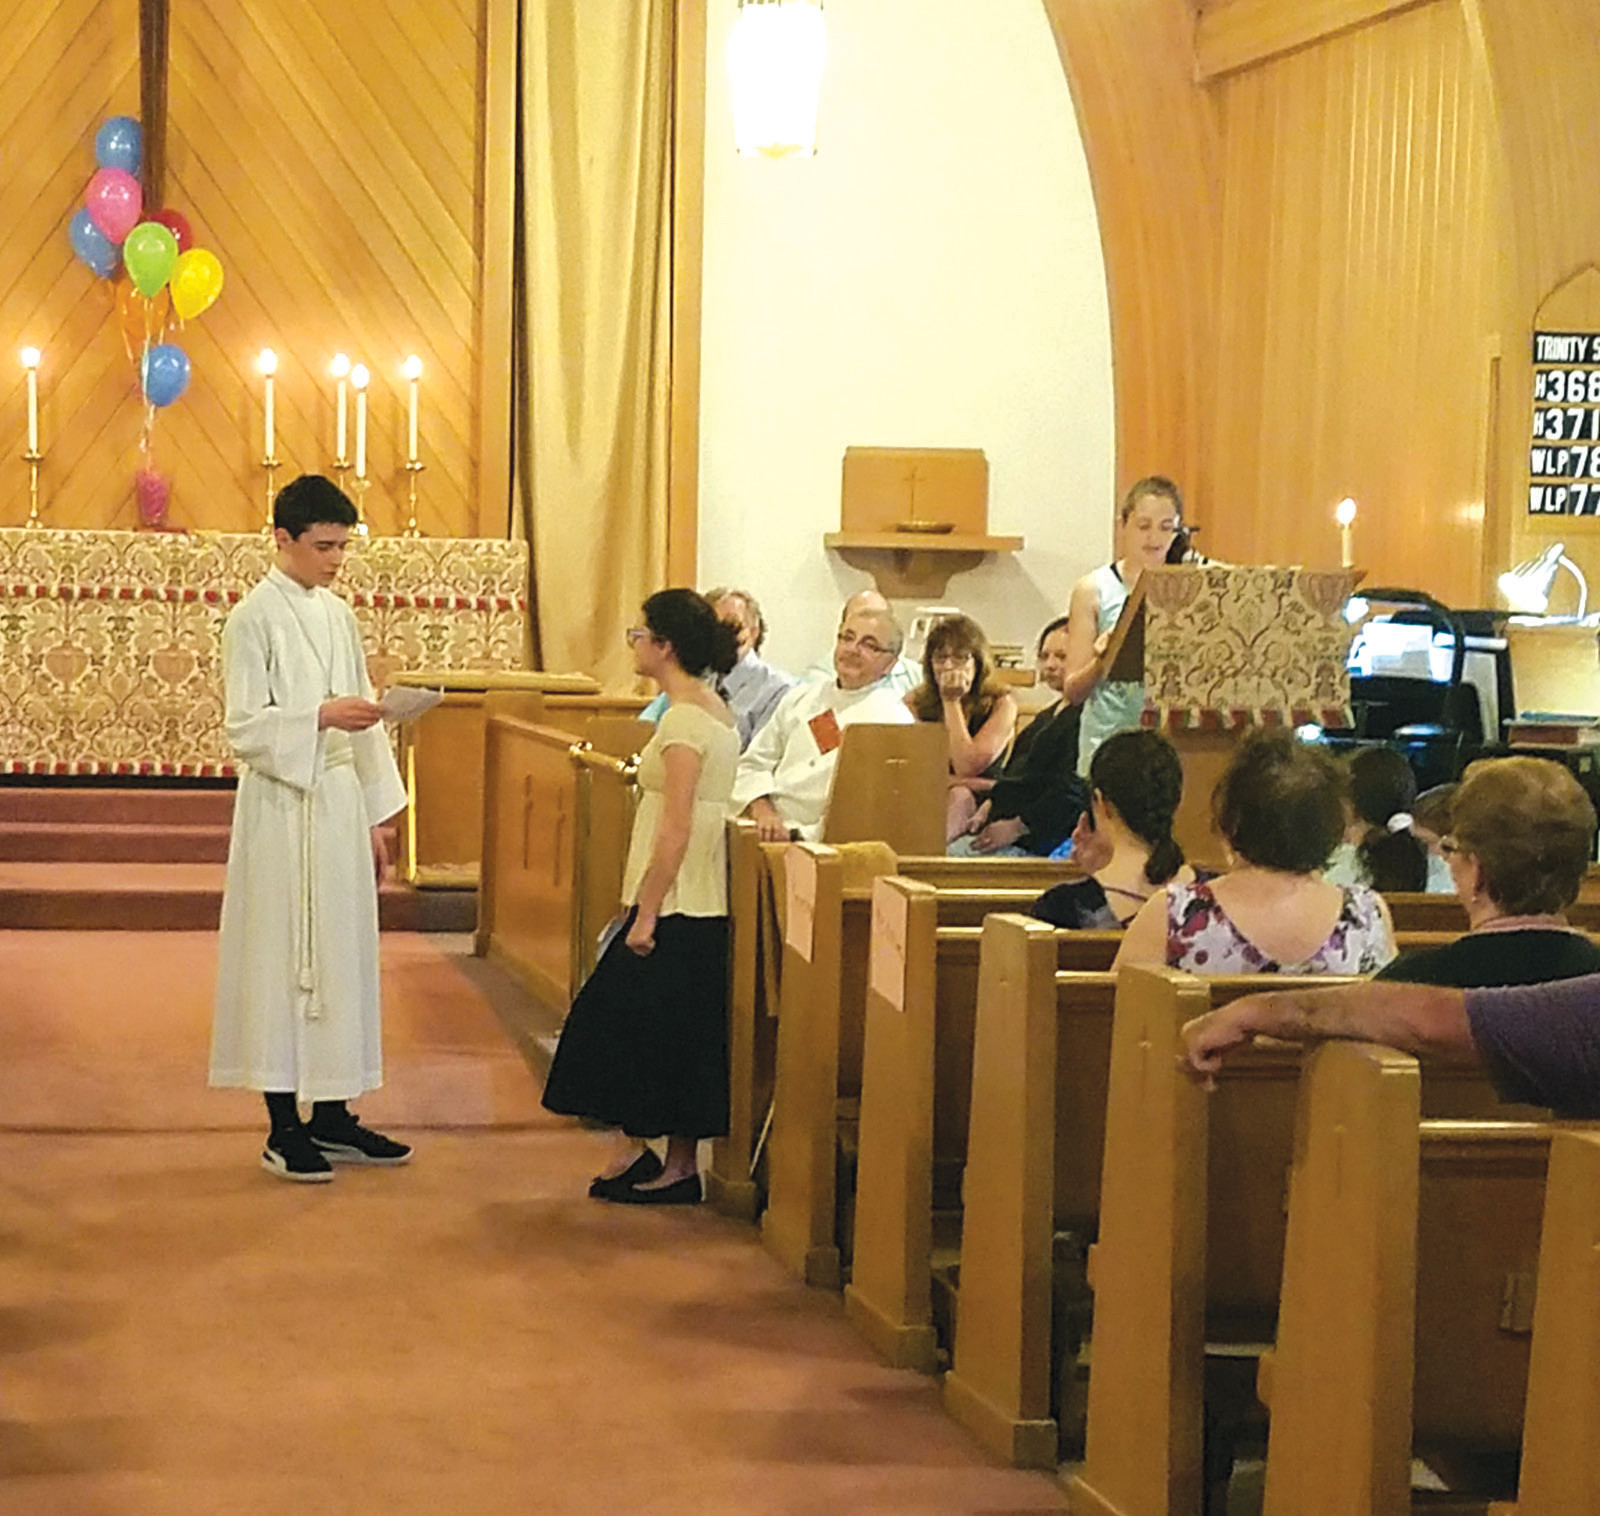 THE LIFE OF ST. DAVID: High school student Alexander Pate and middle school student Mia Boscia help their fellow Sunday School students to tell the story of St. David as parishioners look on.